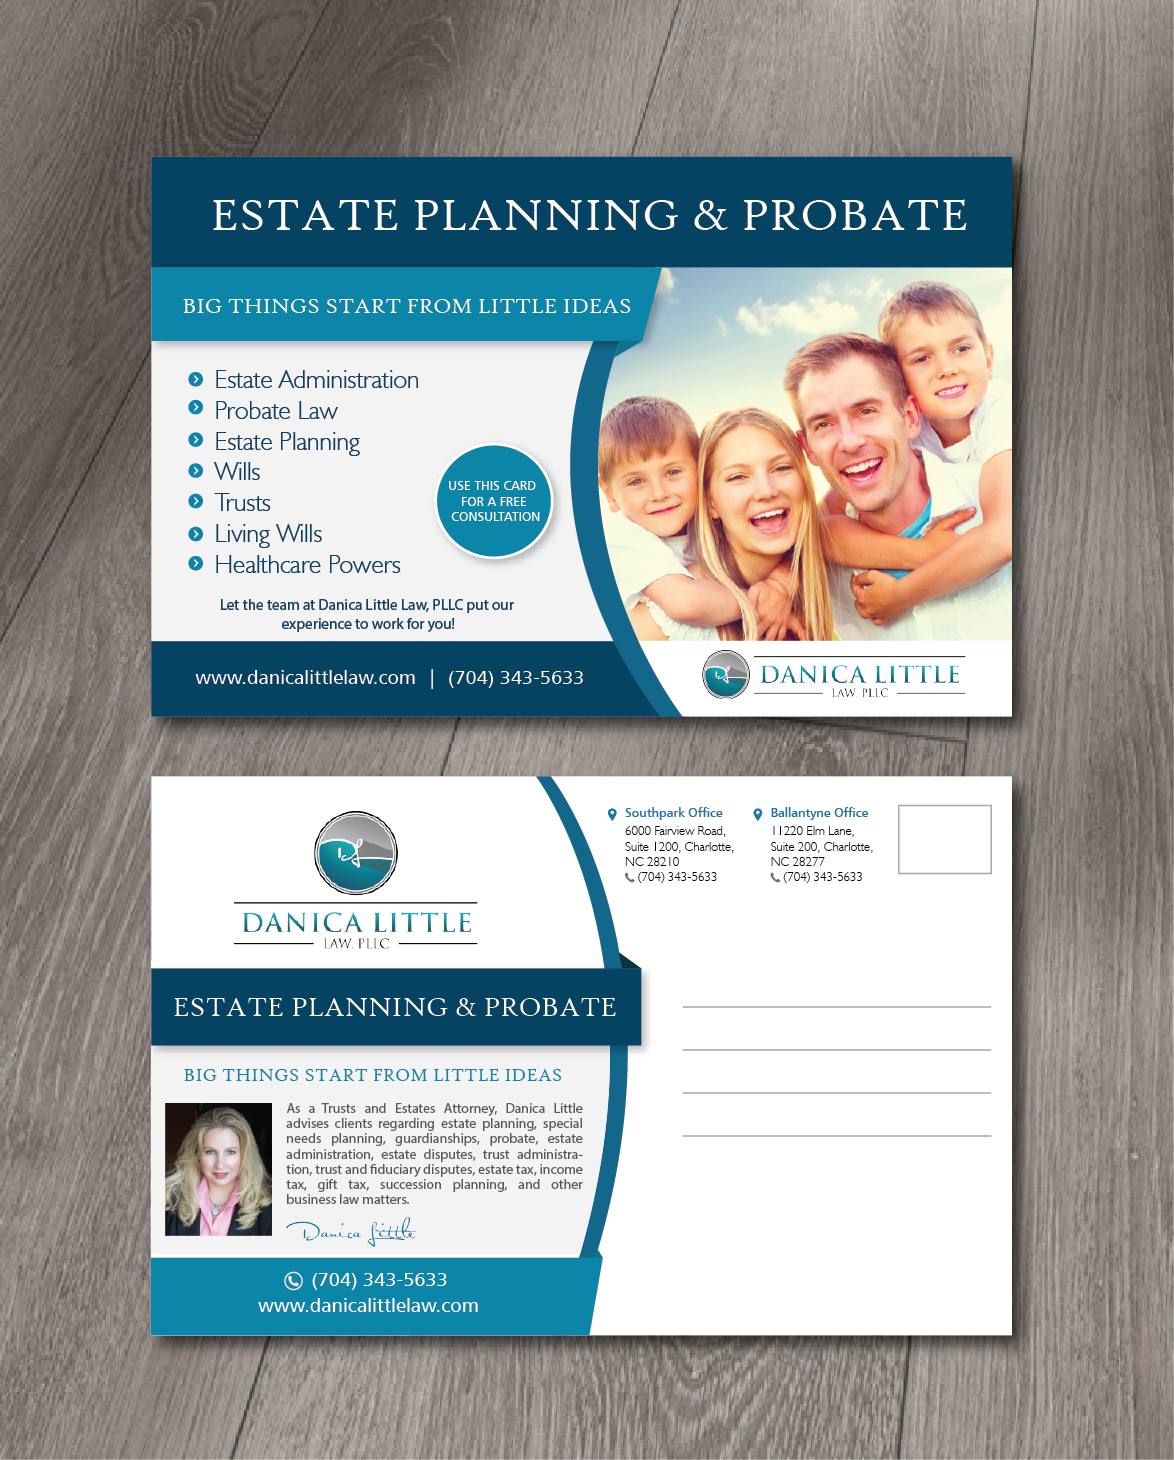 Serious, Professional, Law Firm Postcard Design for Danica Little ...